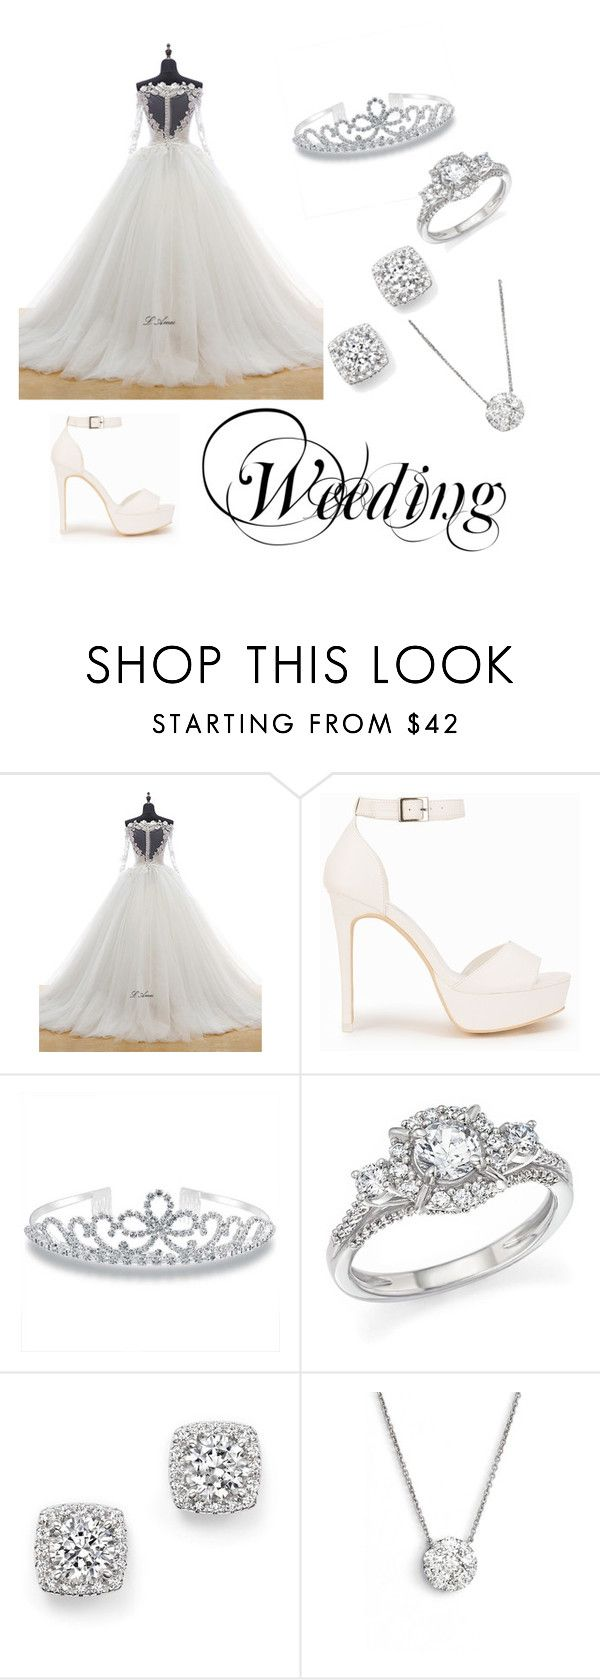 """Weeding- Princess"" by gabydesigner on Polyvore featuring Nly Shoes, Bling Jewelry, Bloomingdale's and Bony Levy"